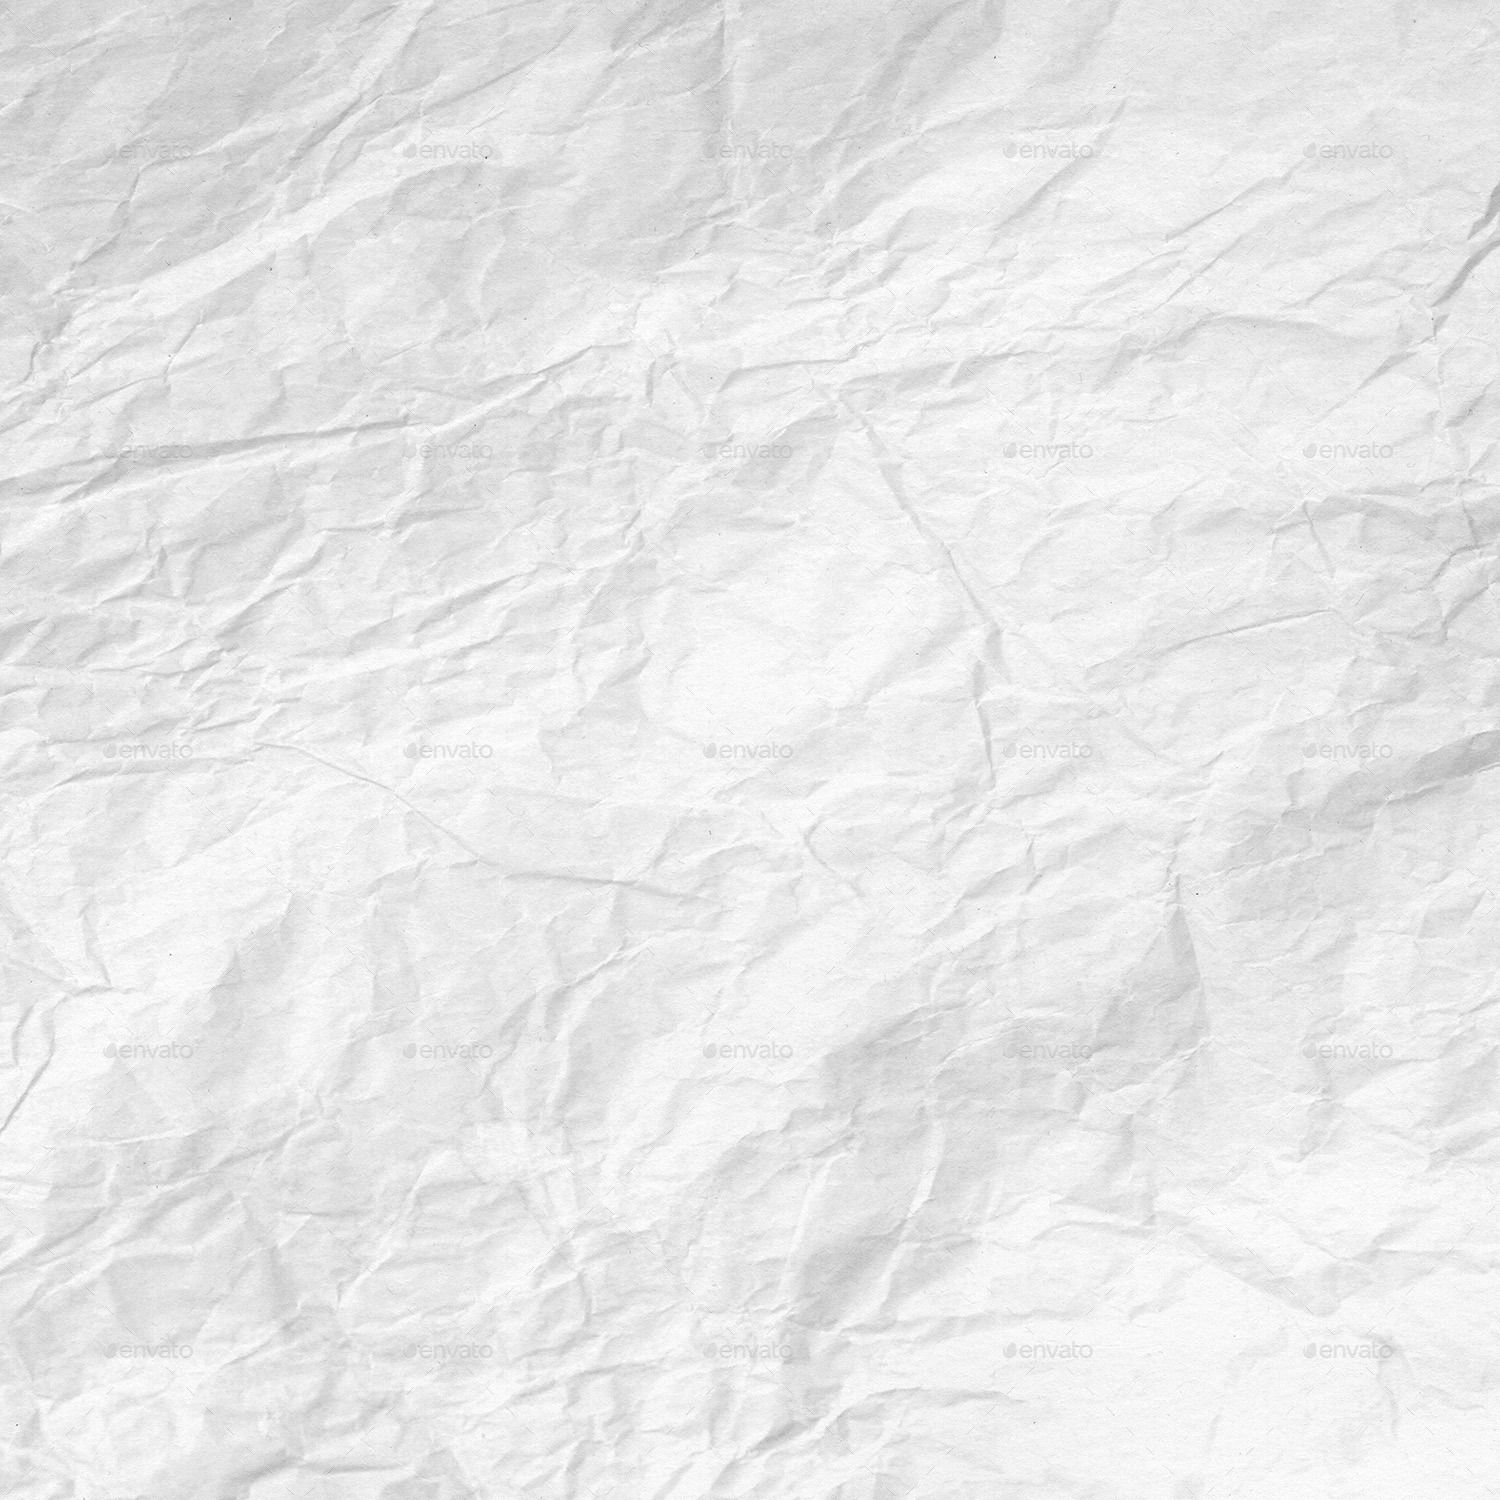 White Old Paper Paper Background Texture Paper Texture White Paper Texture